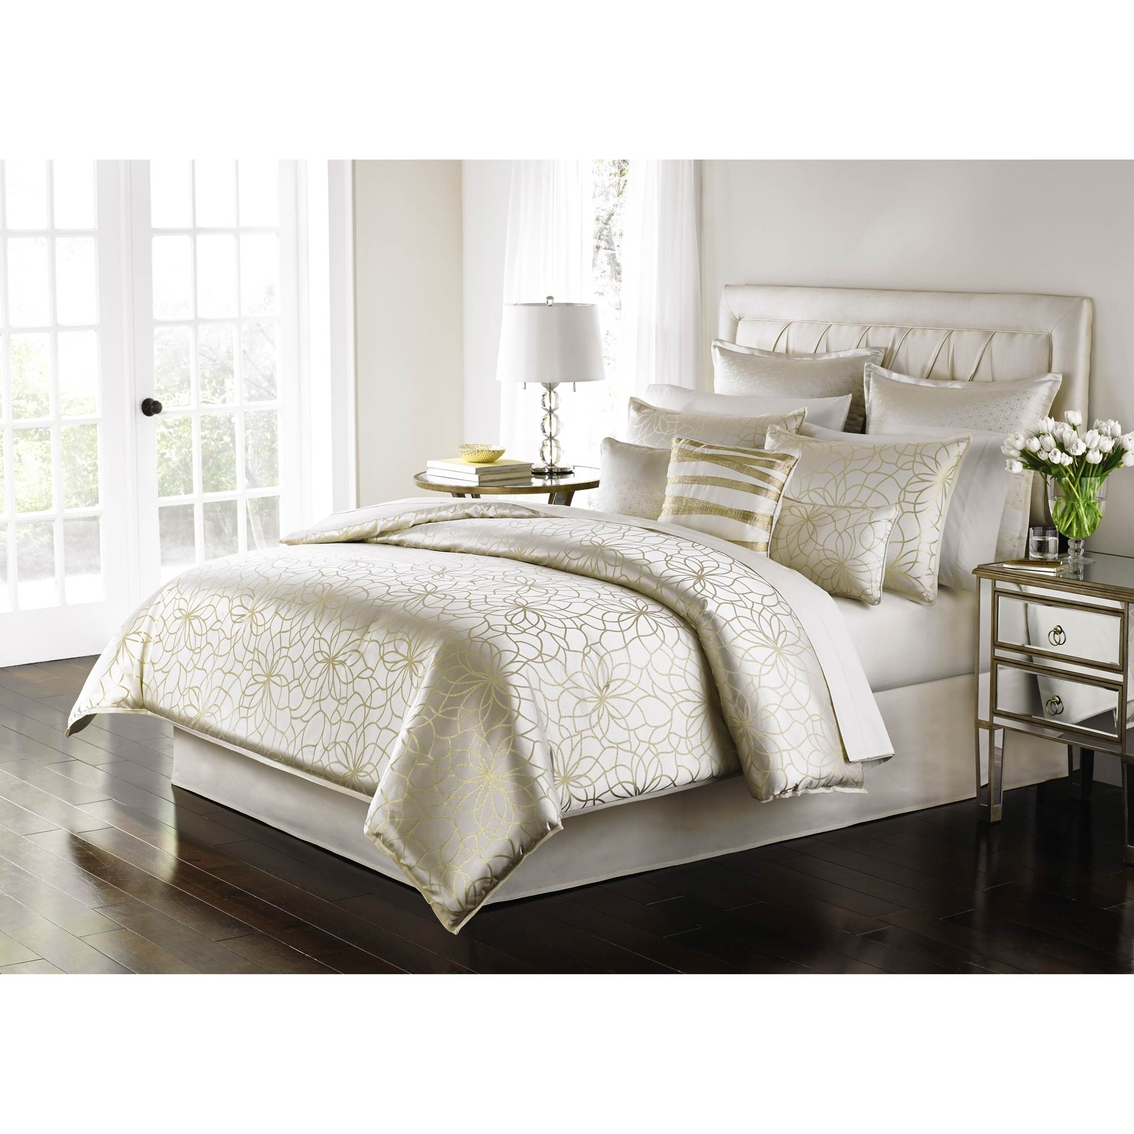 martha stewart collection radiant day 9 pc comforter set bedding collections back to school. Black Bedroom Furniture Sets. Home Design Ideas